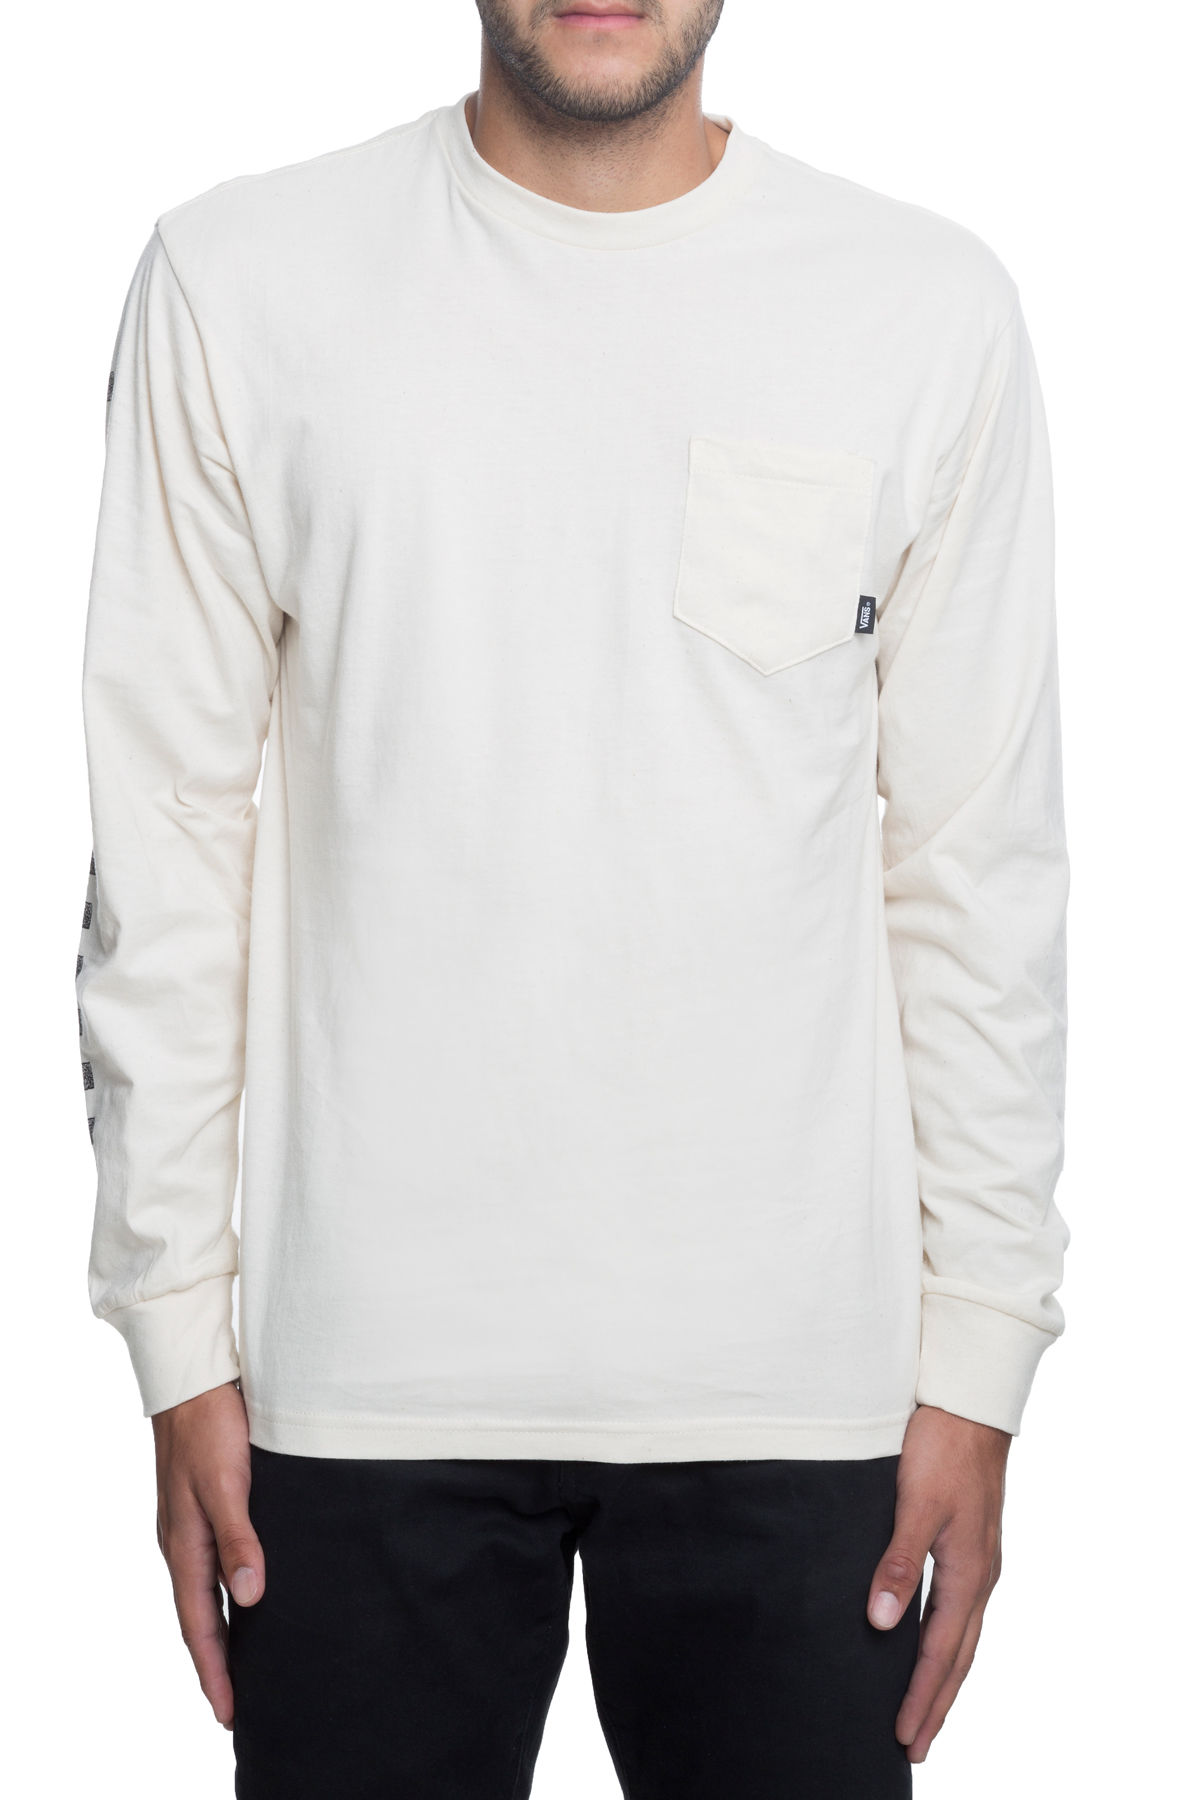 97abadb77232 The Square Root Long Sleeve in Raw Cotton